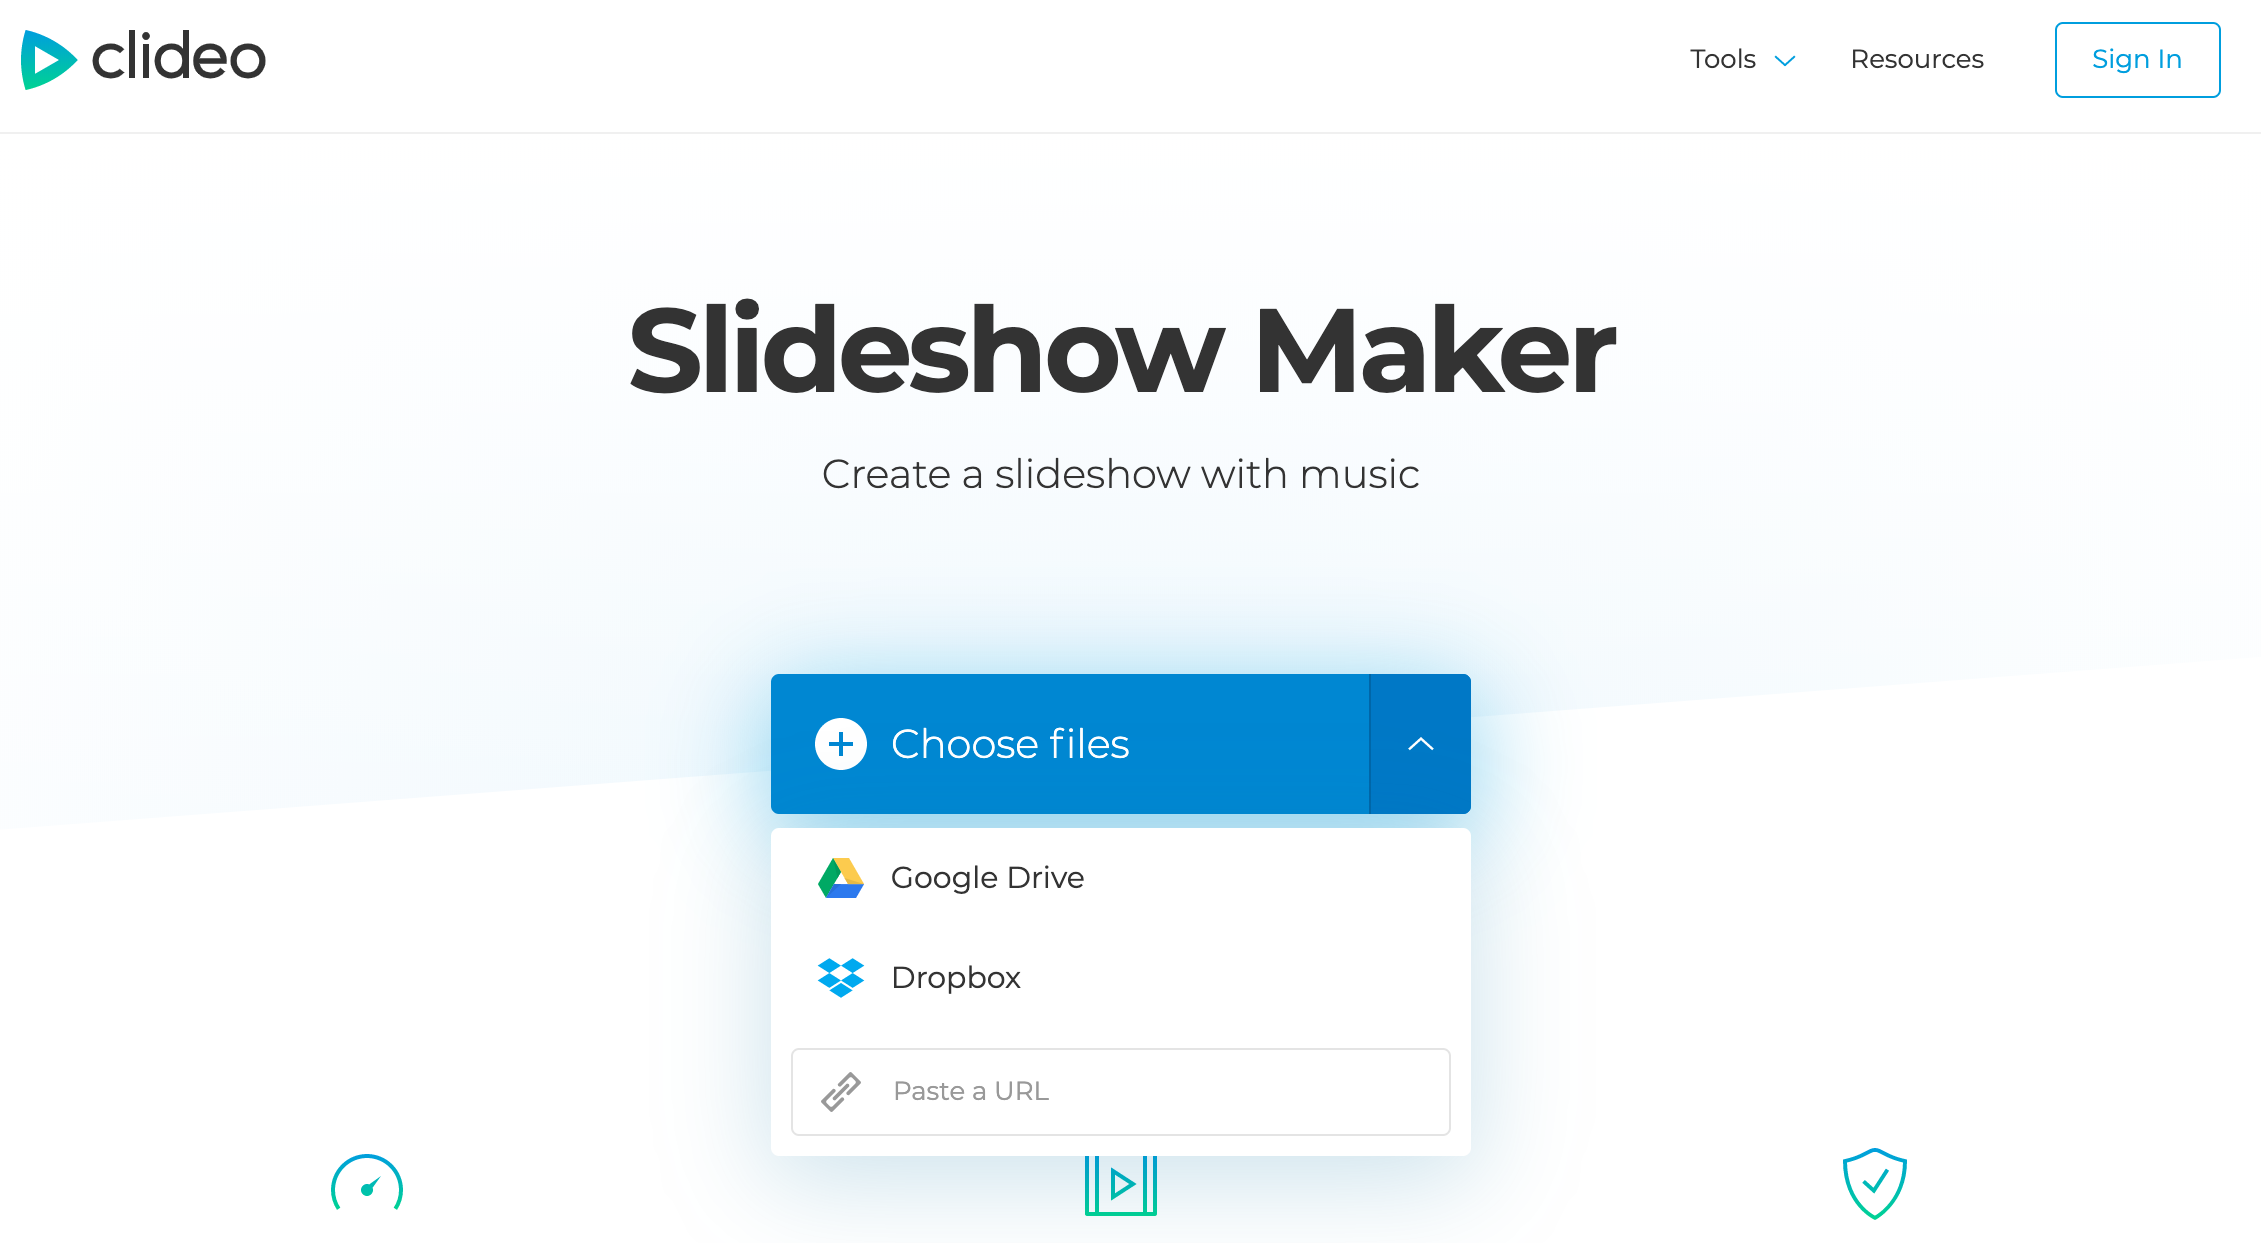 Upload a file to create slideshow